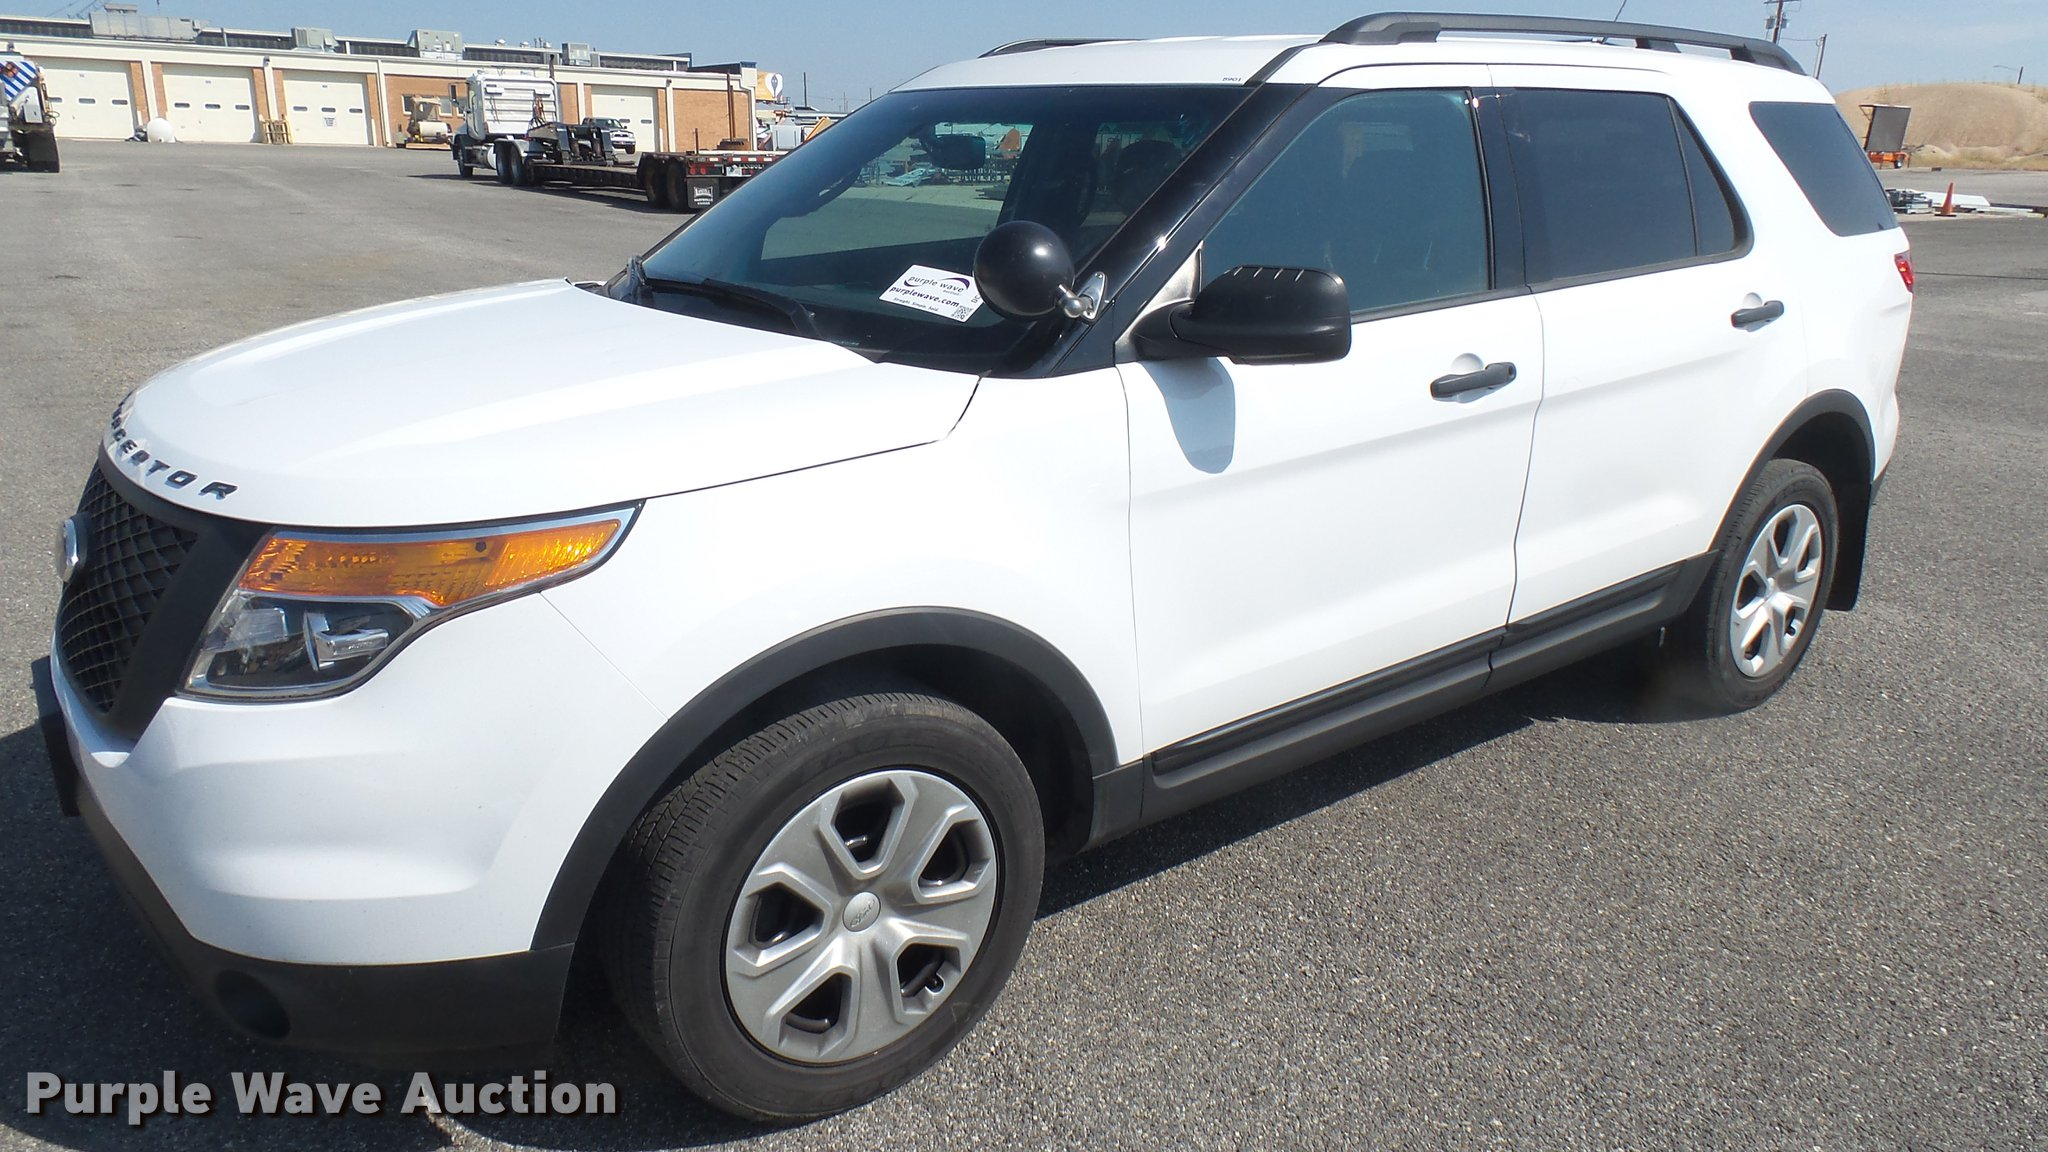 used com and for nh ford price cars auto in img sale explorer new manchester